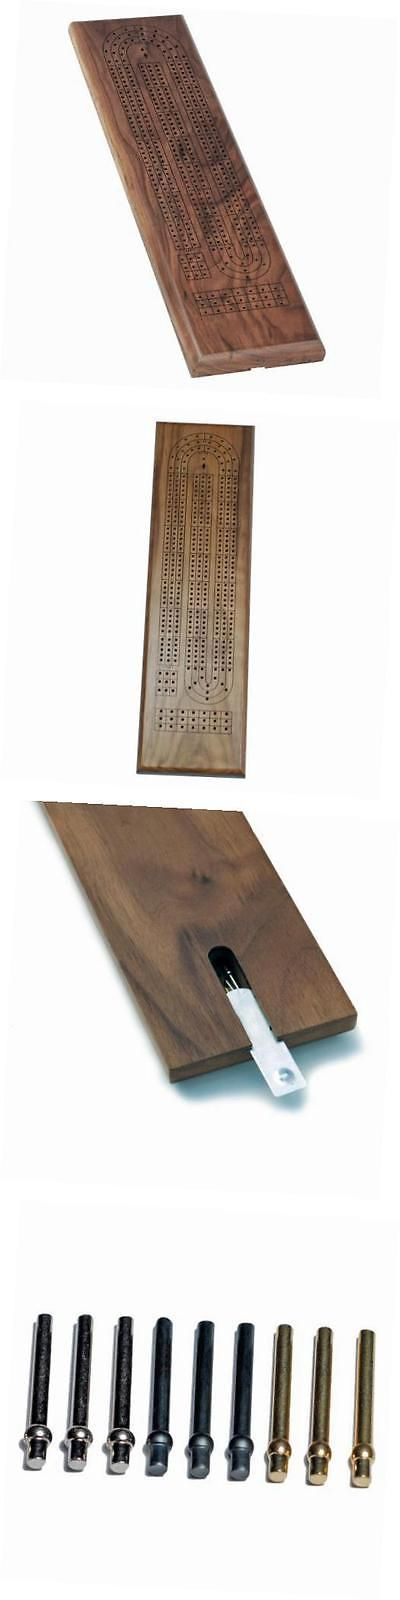 Card Games-Vintage 146004: Classic Cribbage Set - Solid Walnut Wood Continuous 3 Track Board With Metal -> BUY IT NOW ONLY: $31.54 on eBay!